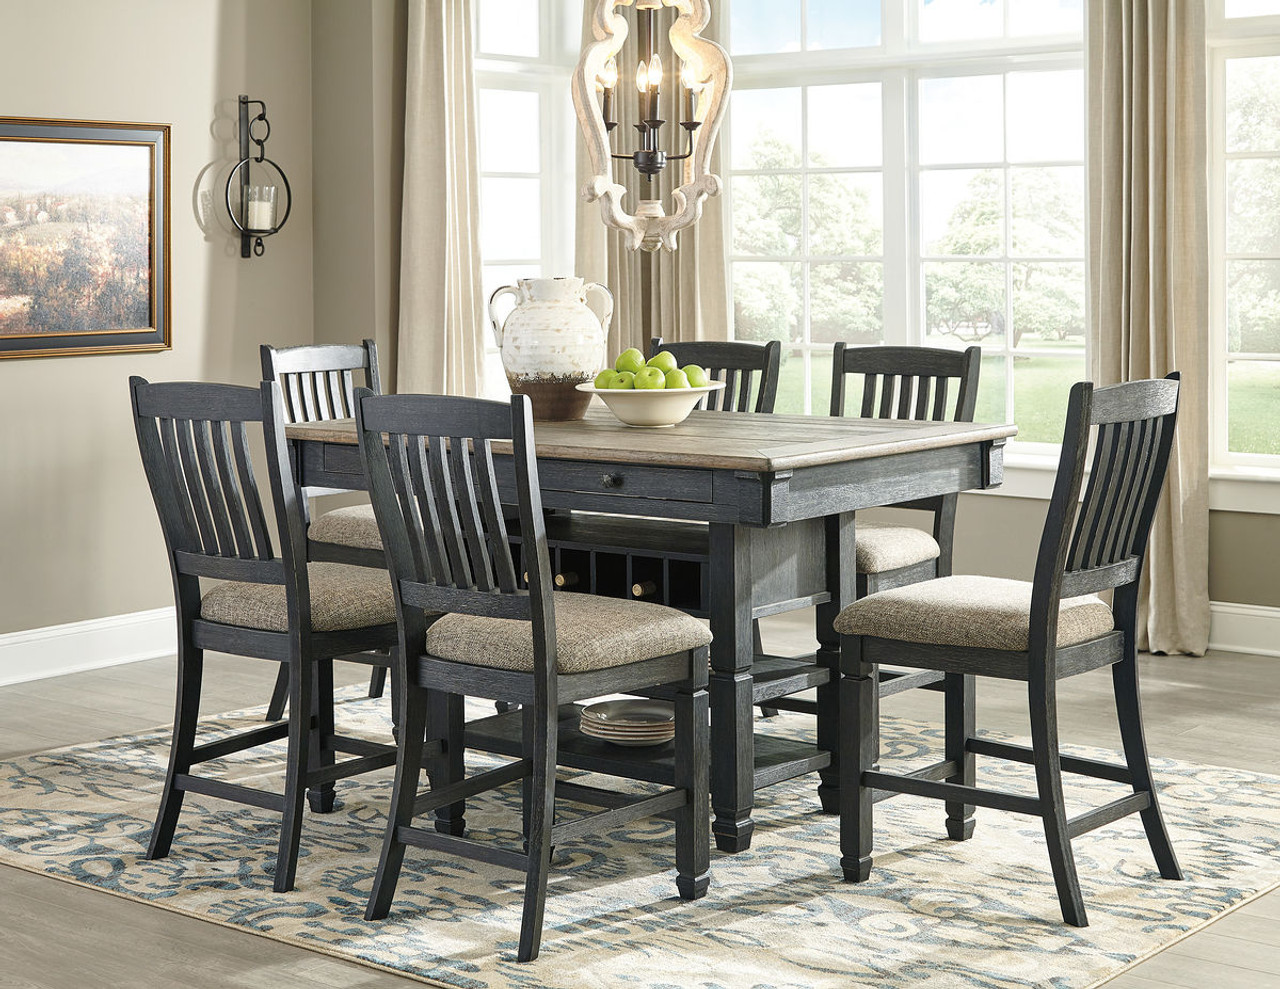 The Tyler Creek BlackGray Rectangular Dining Room Counter Table